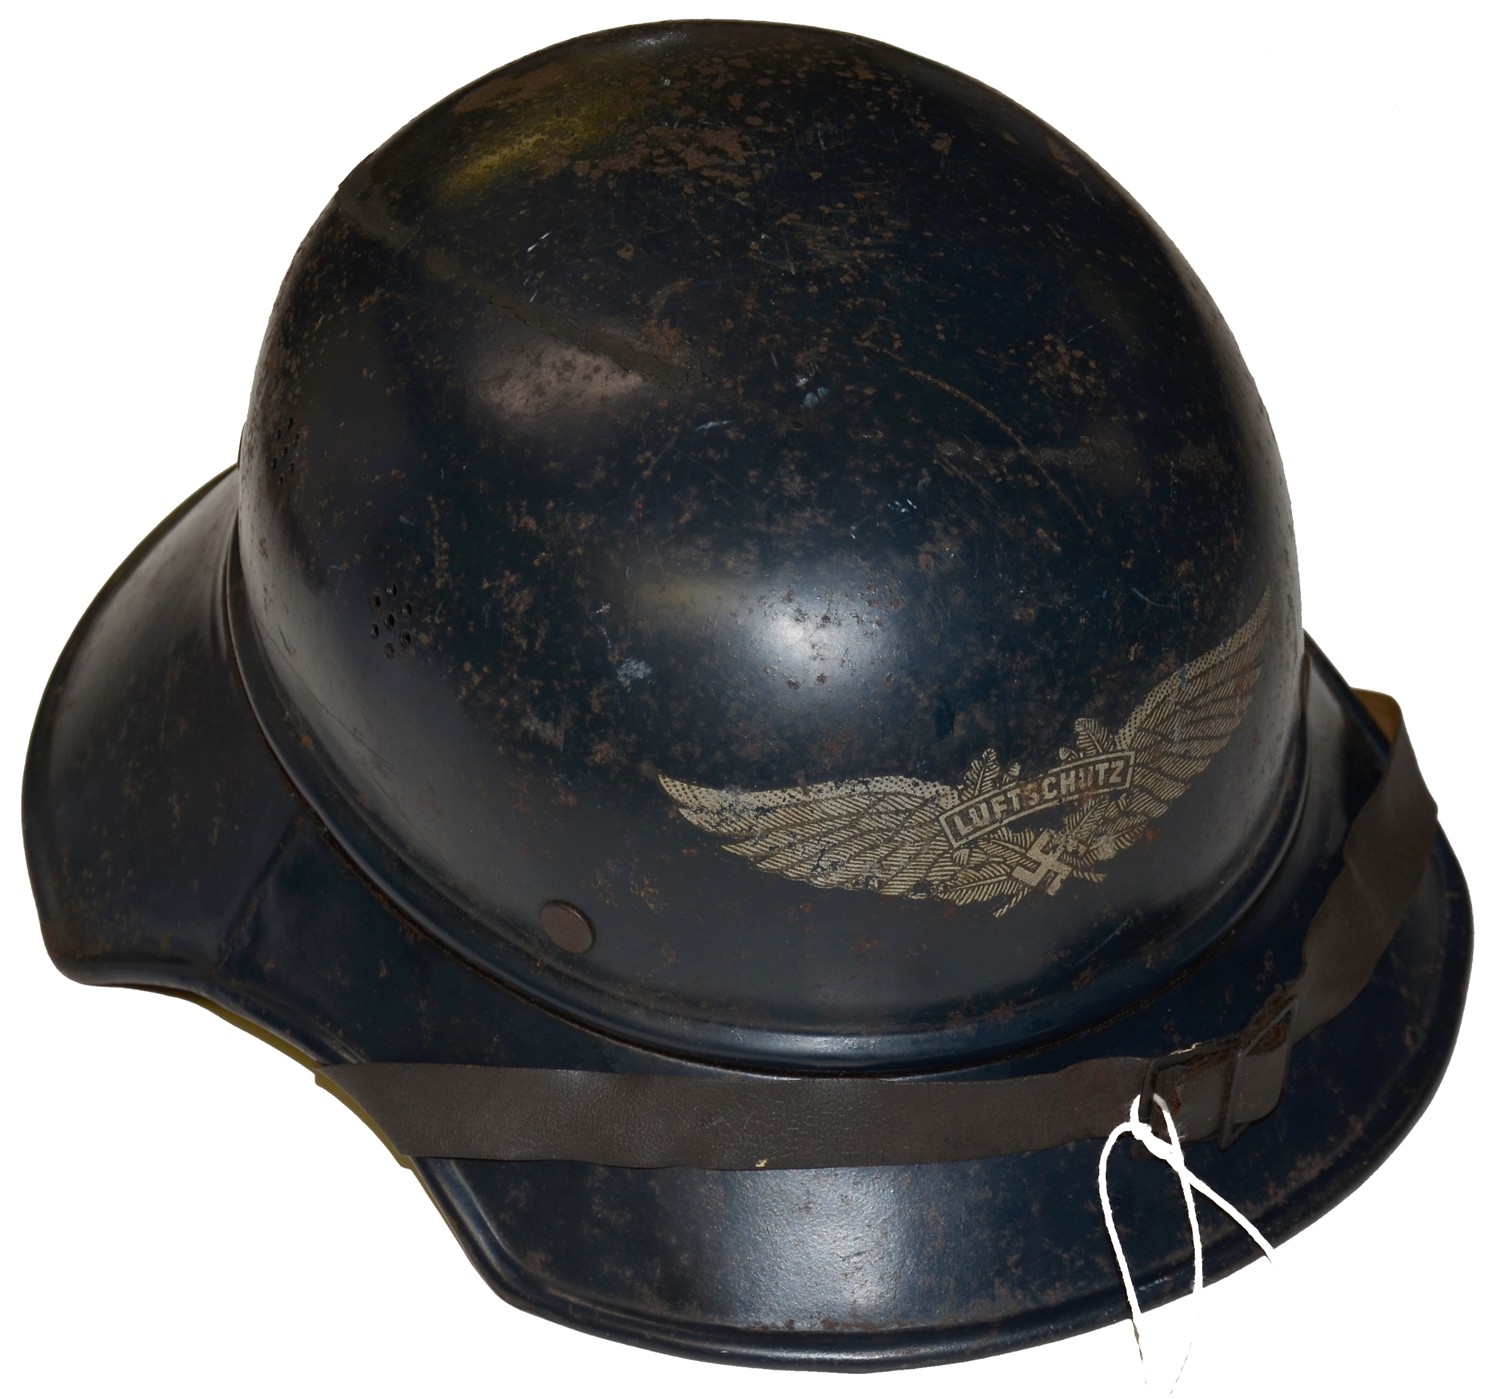 WORLD WAR TWO GERMAN LUFTSCHUTZ HELMET FROM THE RON TUNISON COLLECTION